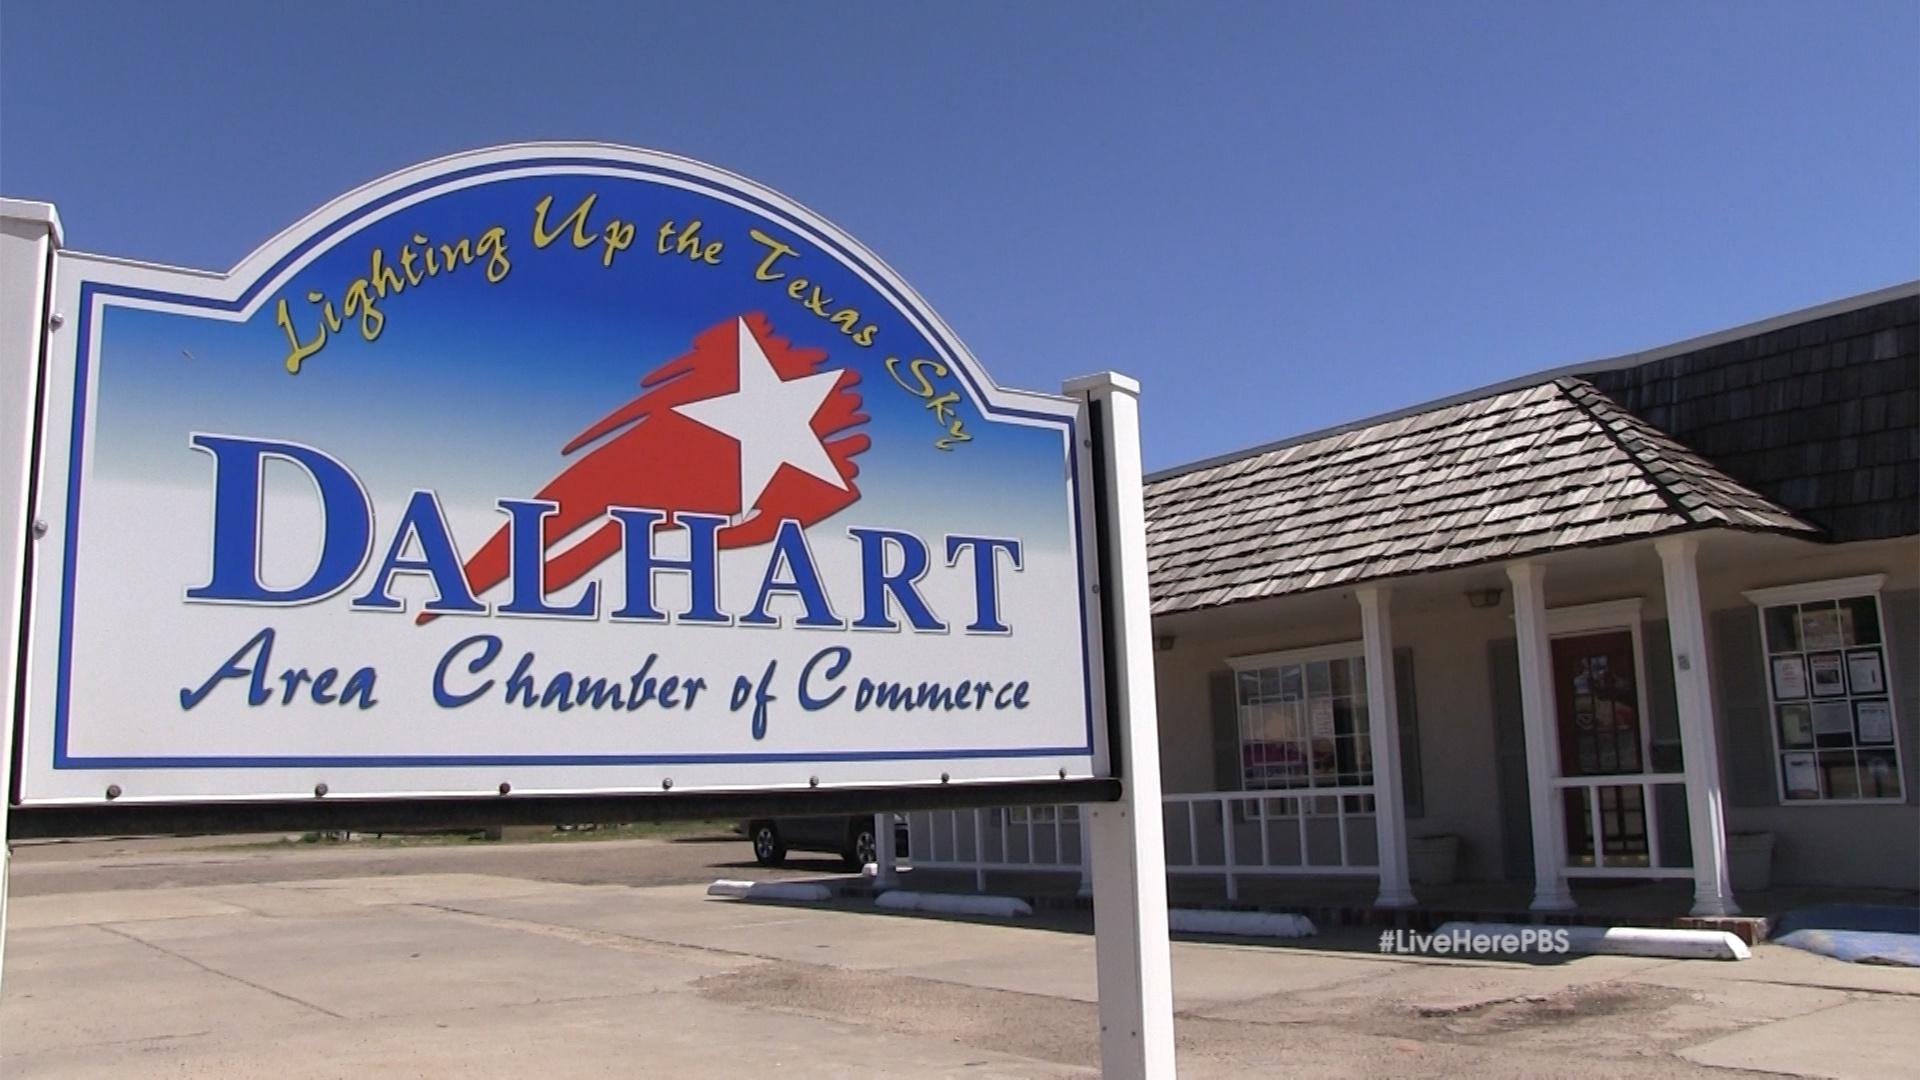 Dalhart fights rural out-migration